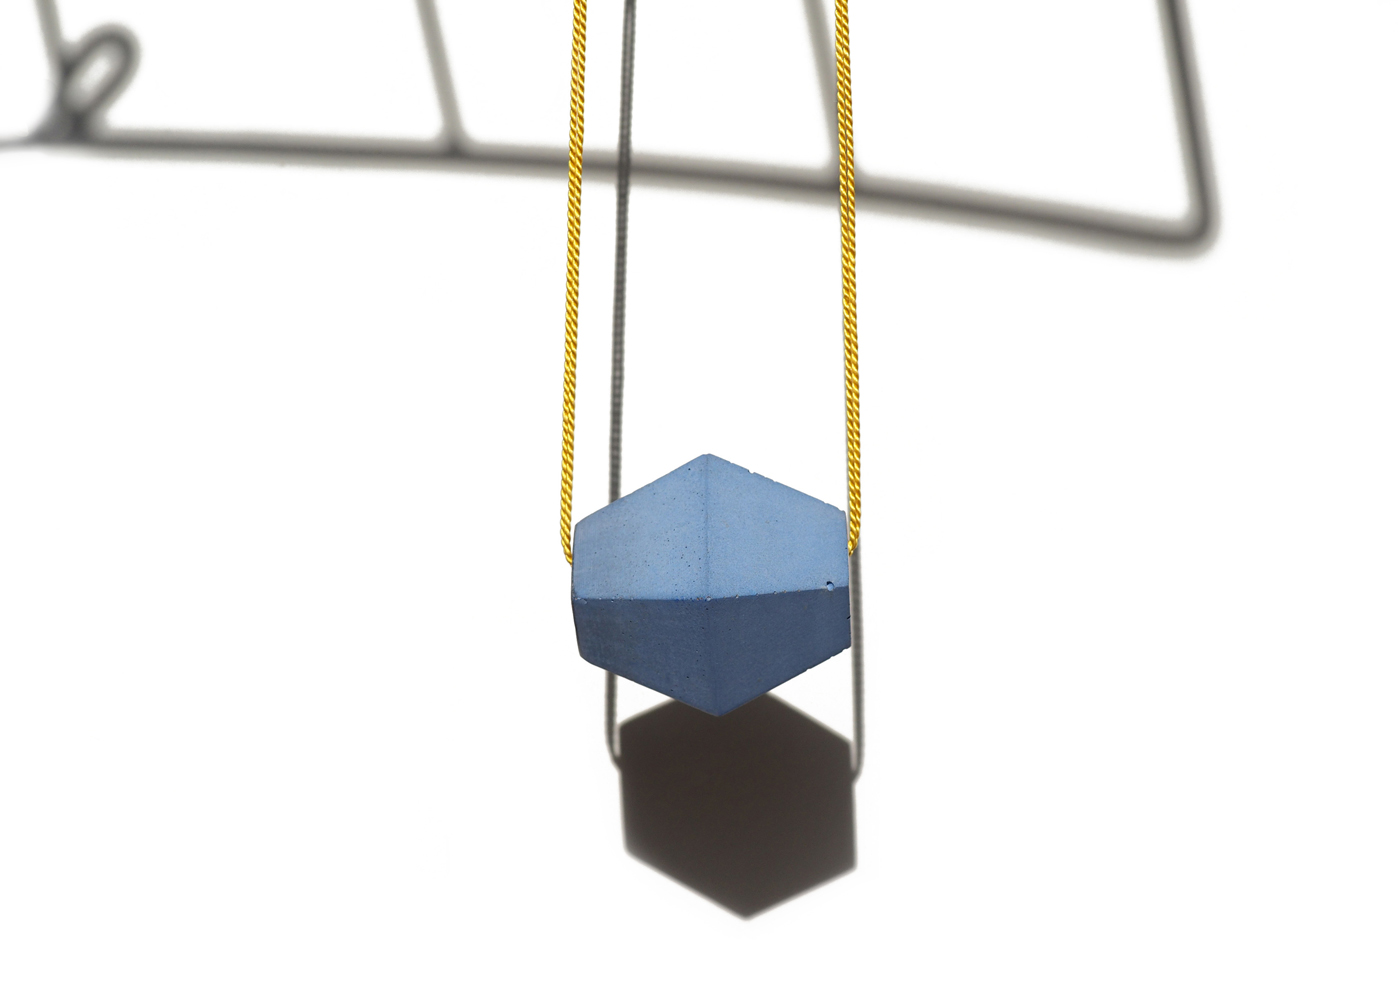 WEB Blue Trap Nkl Hanging.jpg